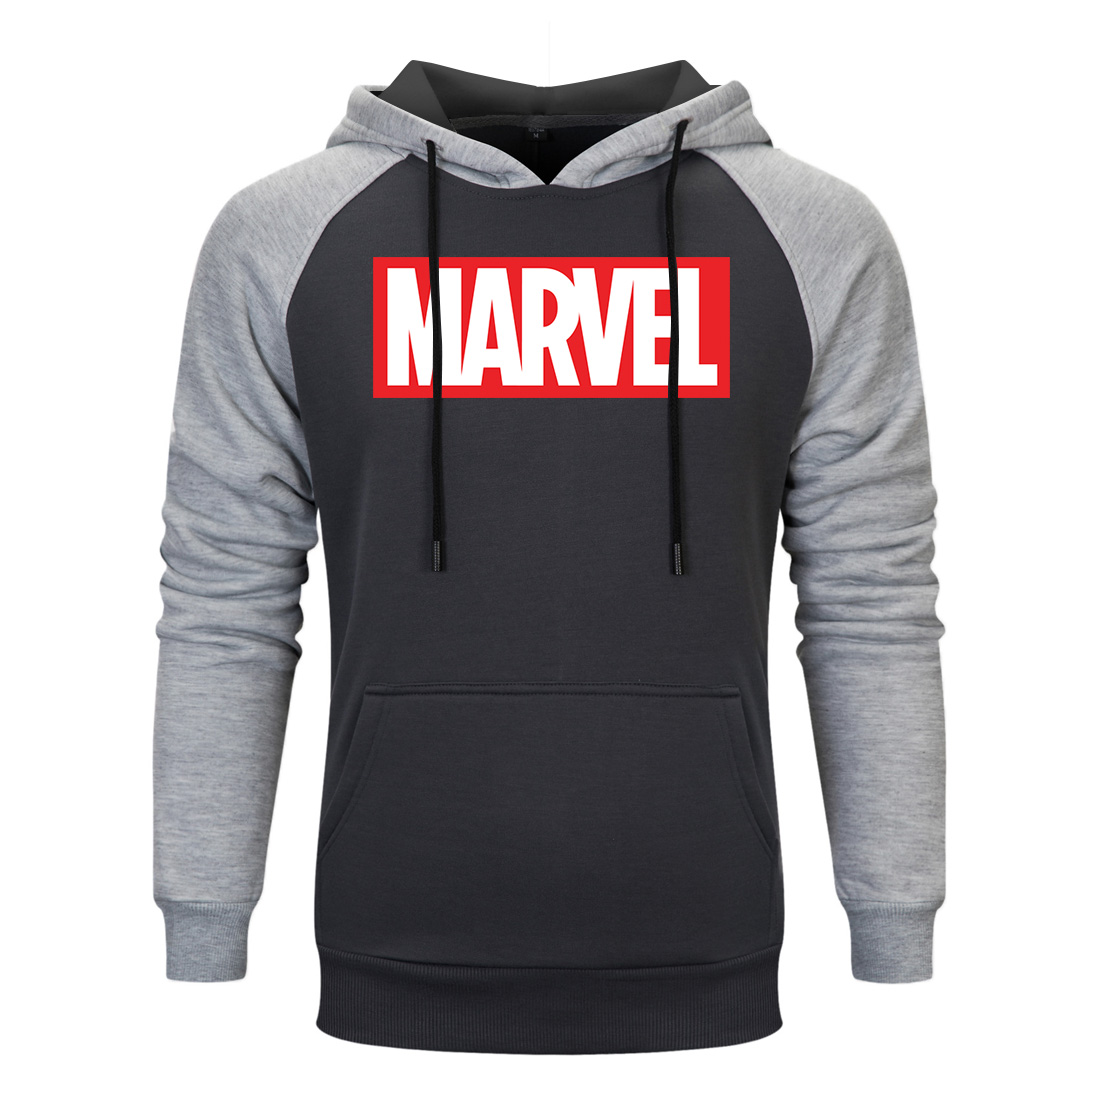 2019 Fashion Marvel Sweatshirt Men Autumn New Avengers Cotton Cool Street Hip Hop Clothing Casual Hoodies Tops Sudadera Hombre